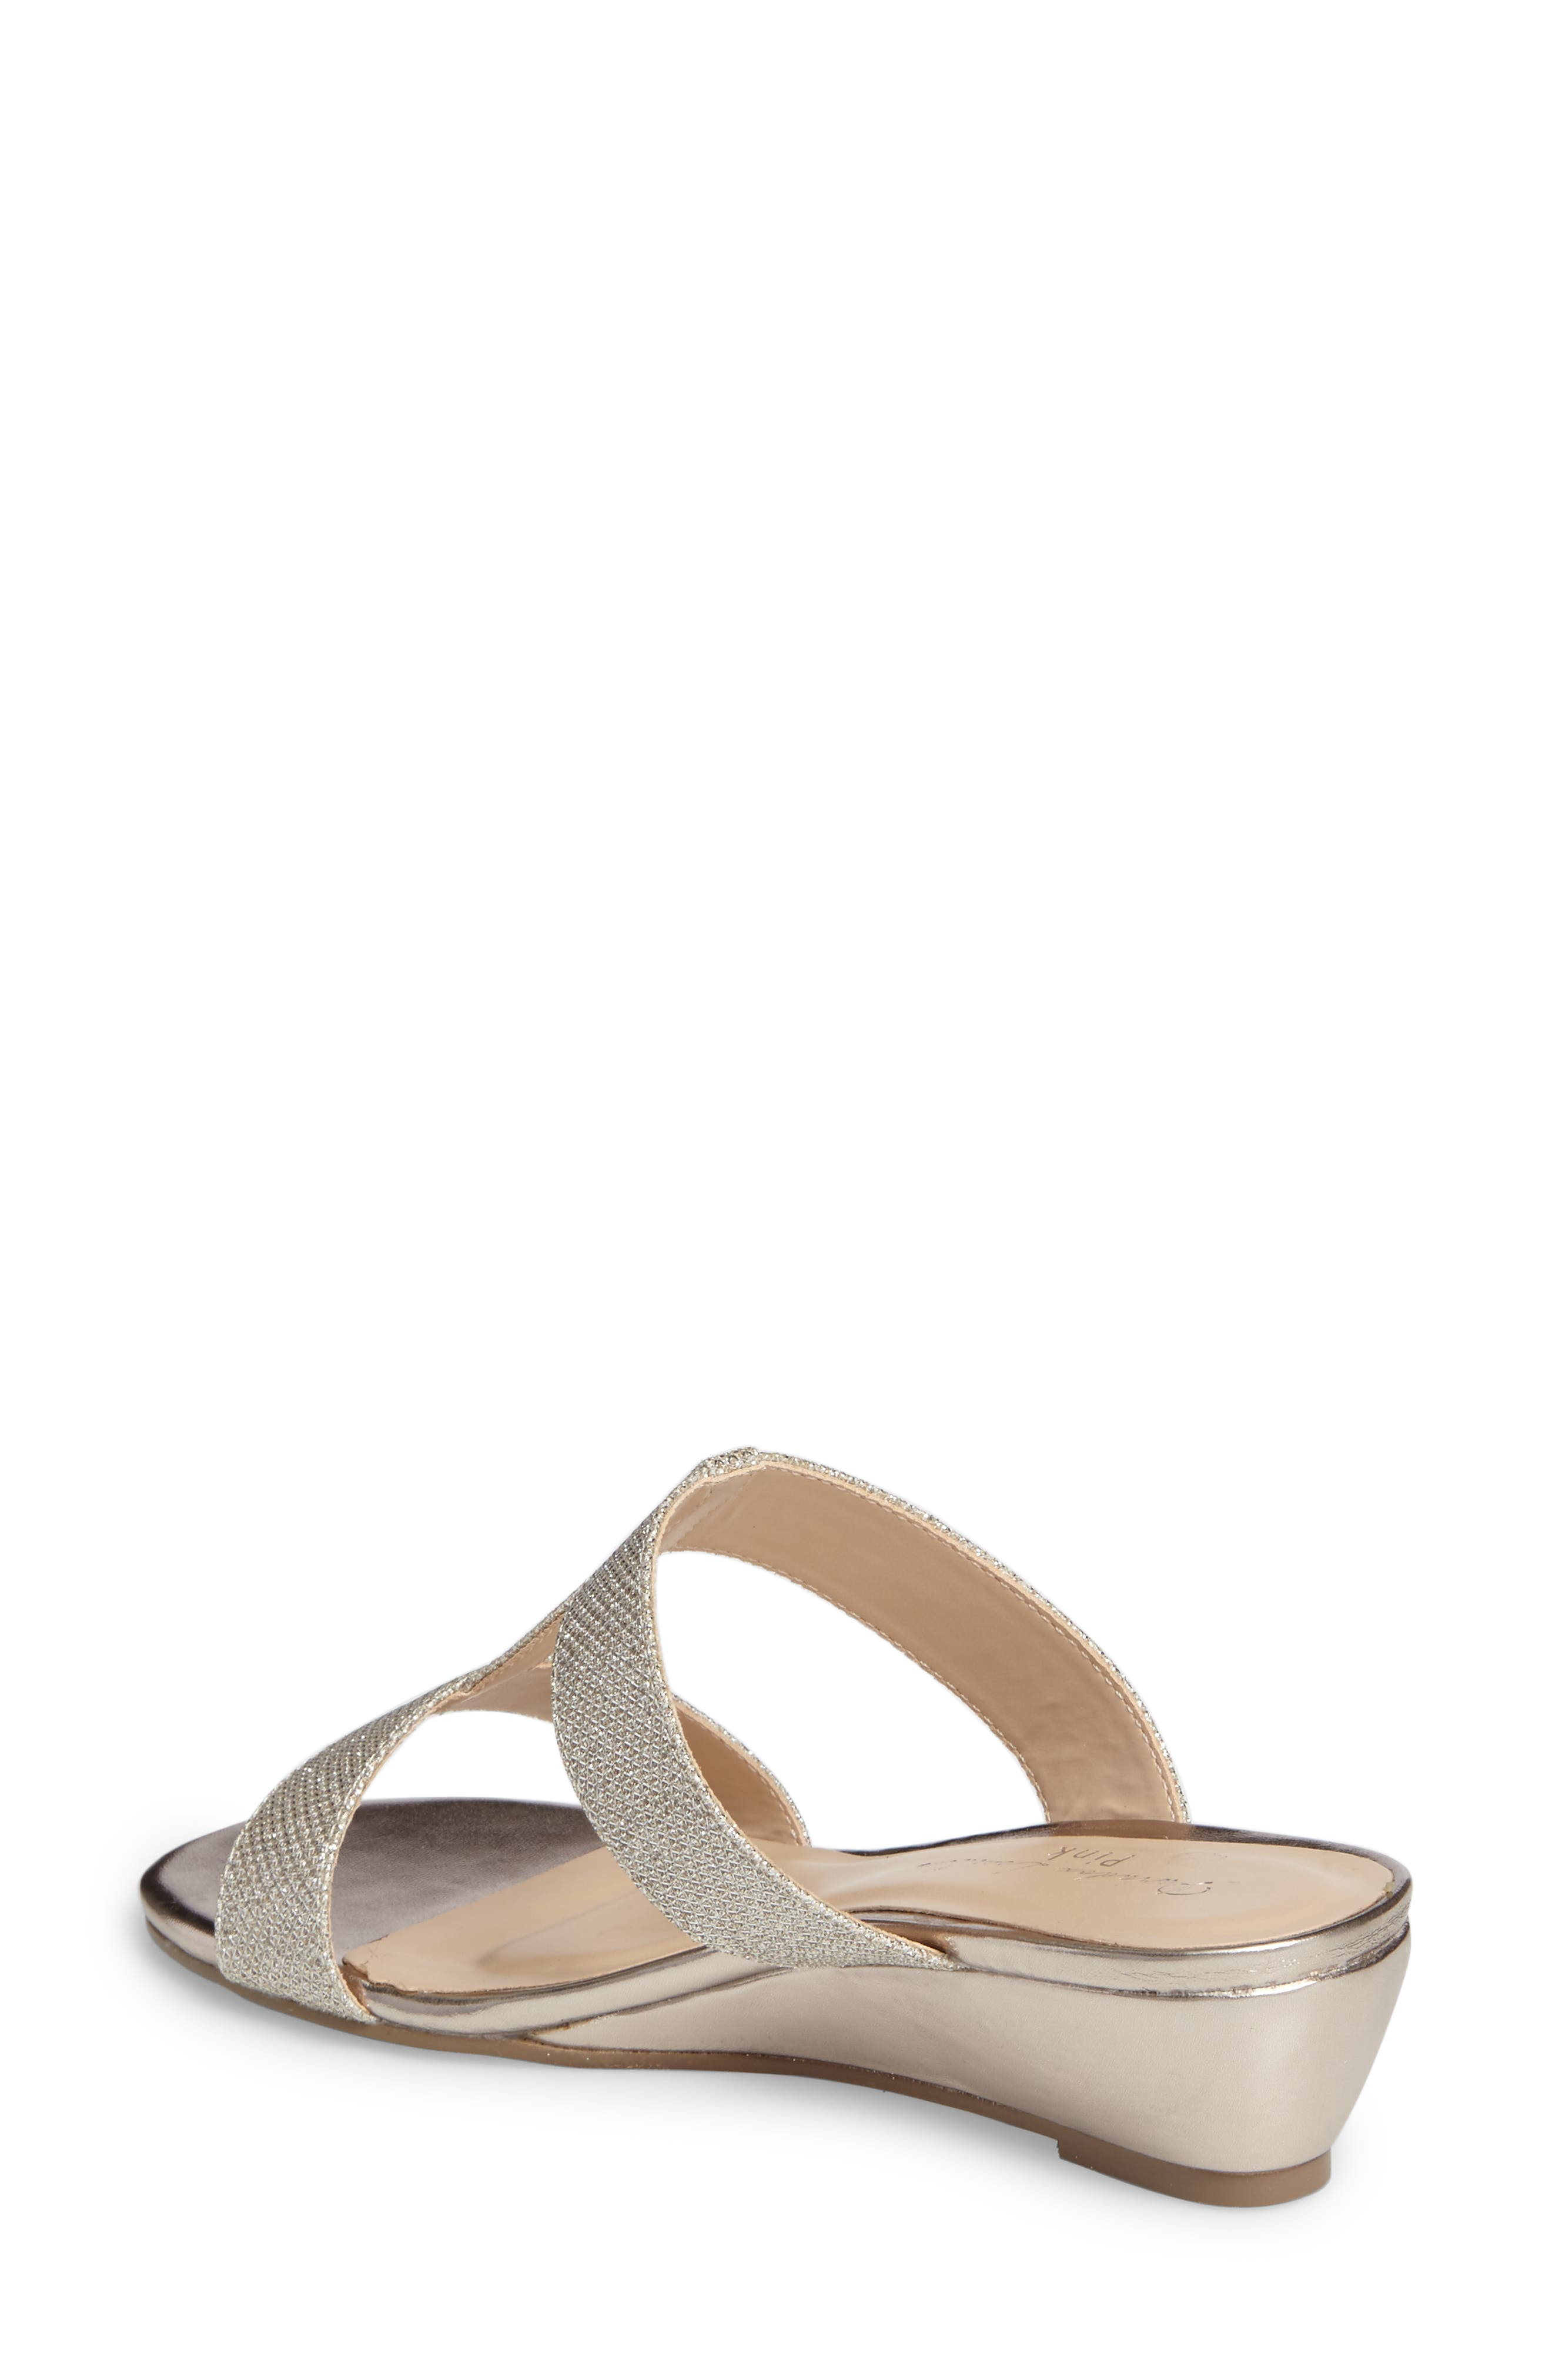 Melina Wedge Slide Sandal,                             Alternate thumbnail 4, color,